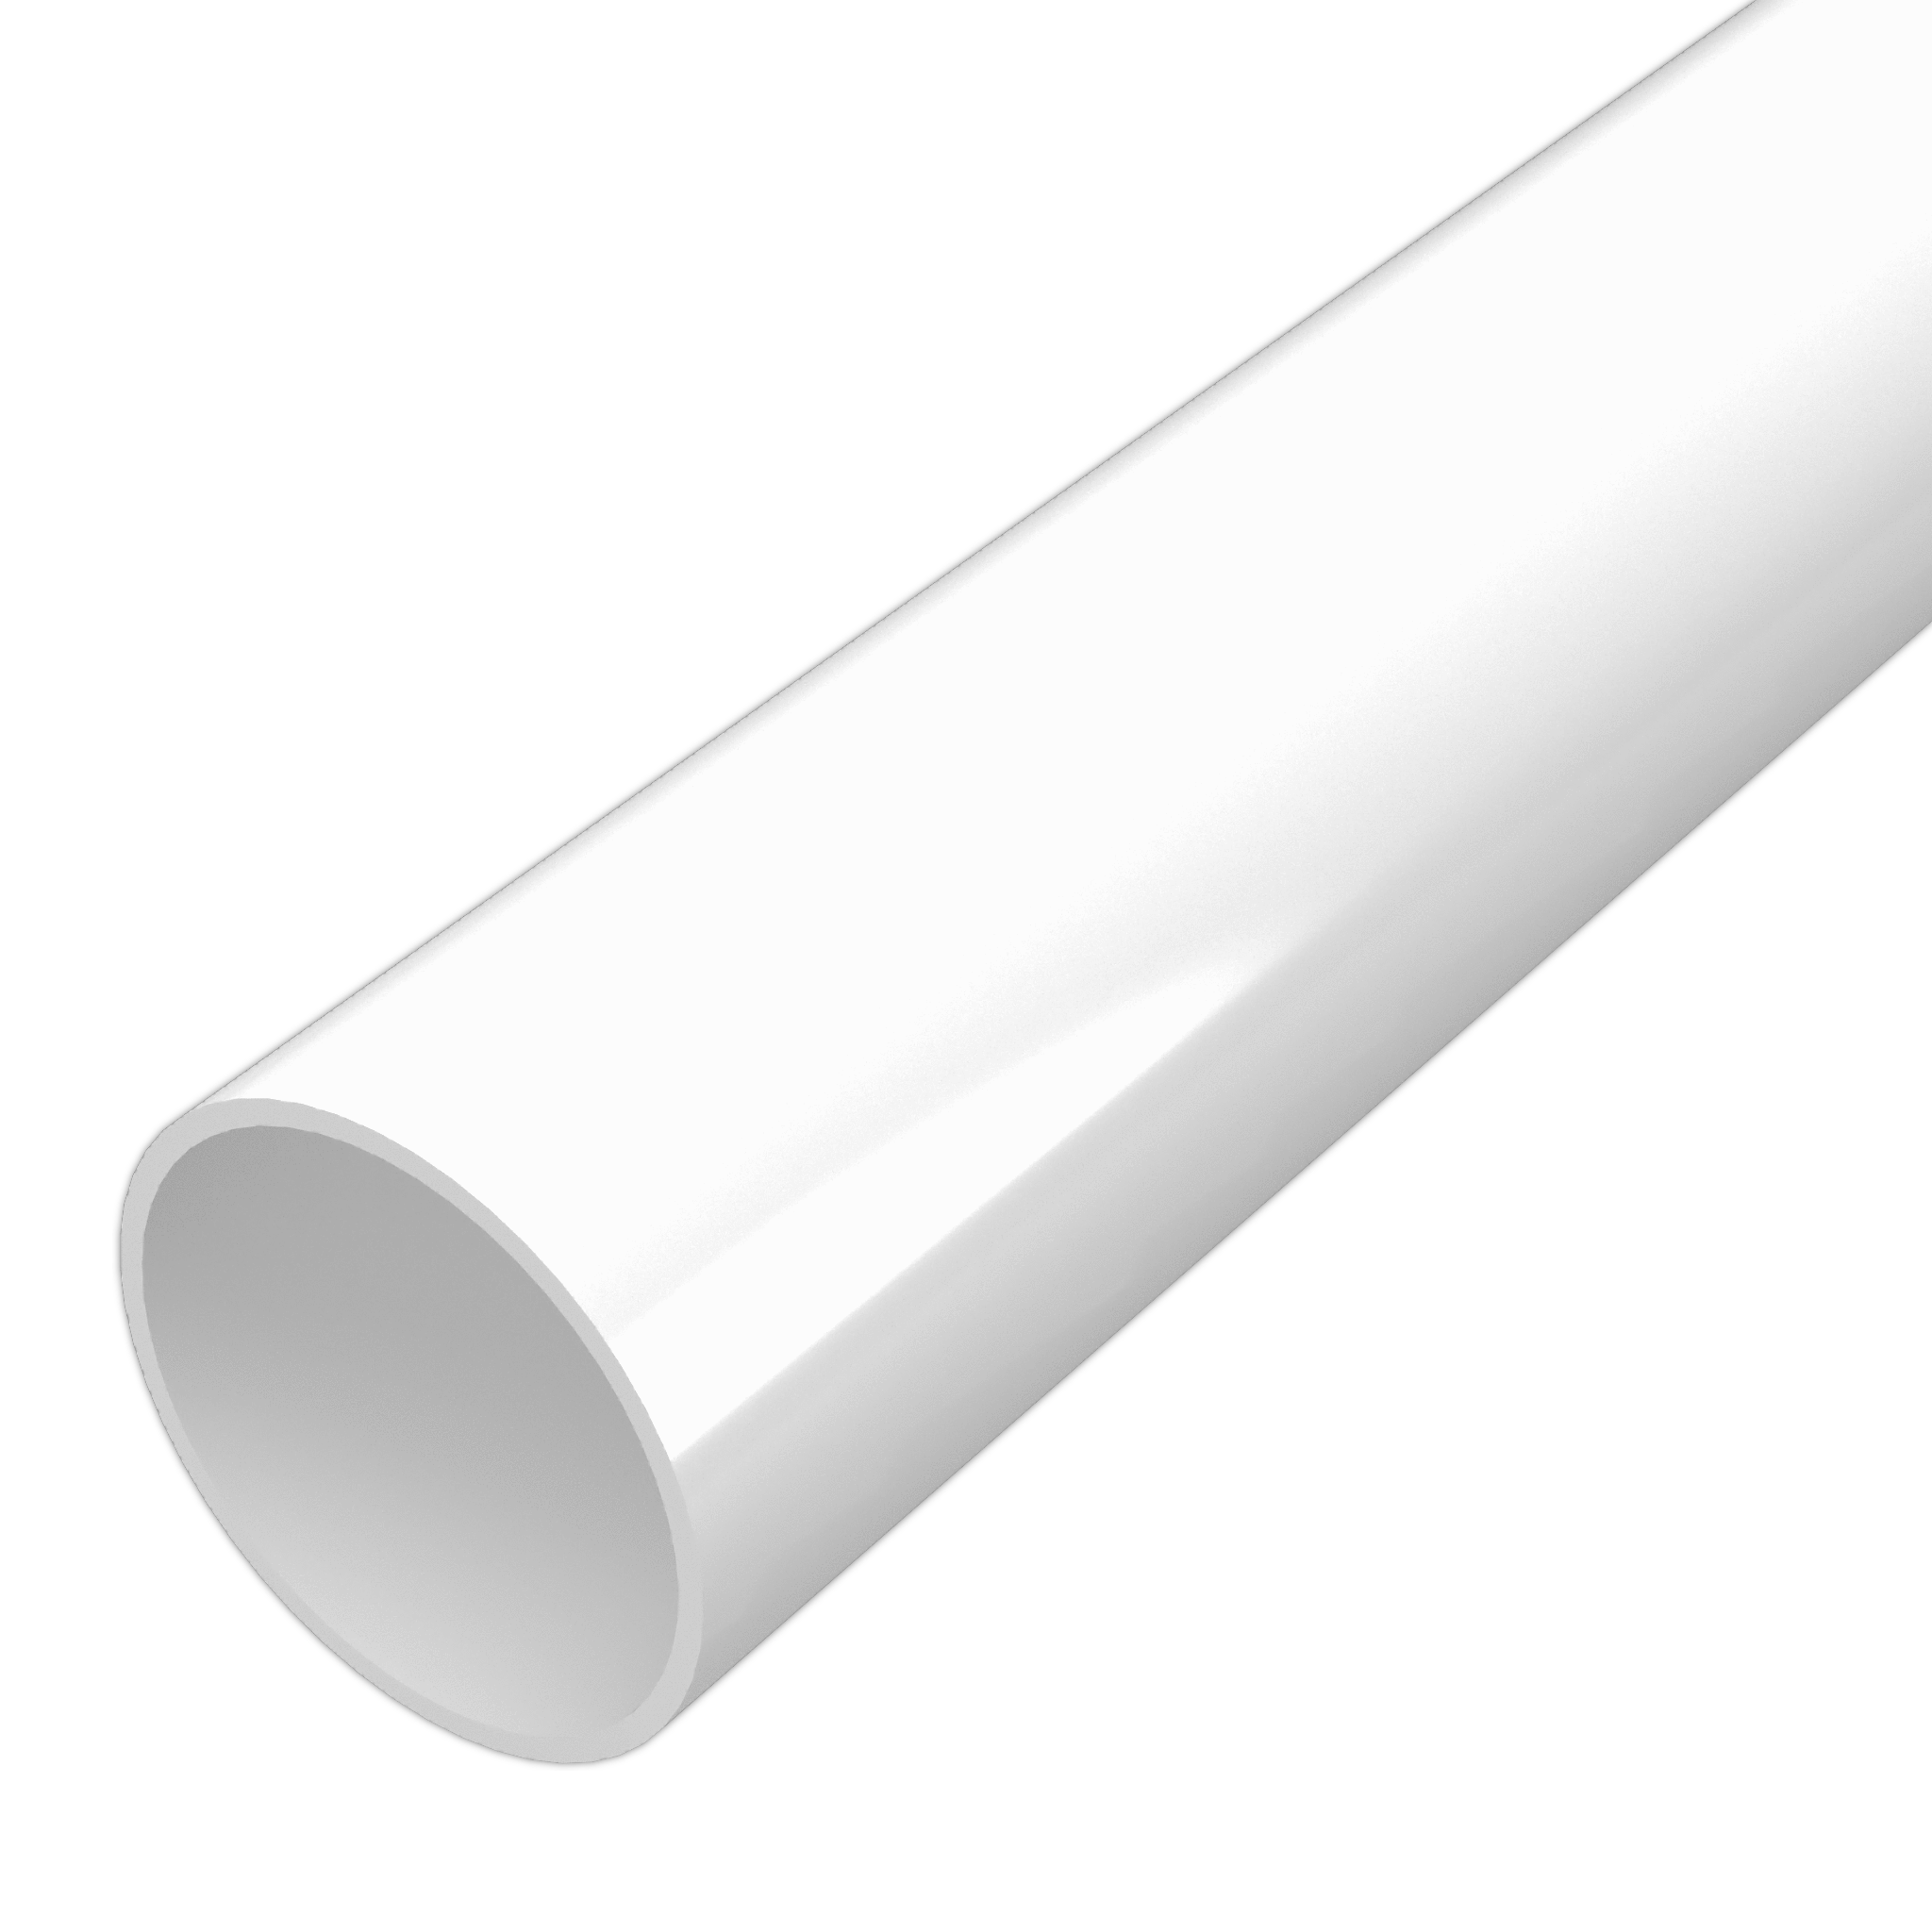 Pvc pipe png. Thinwall furniture grade